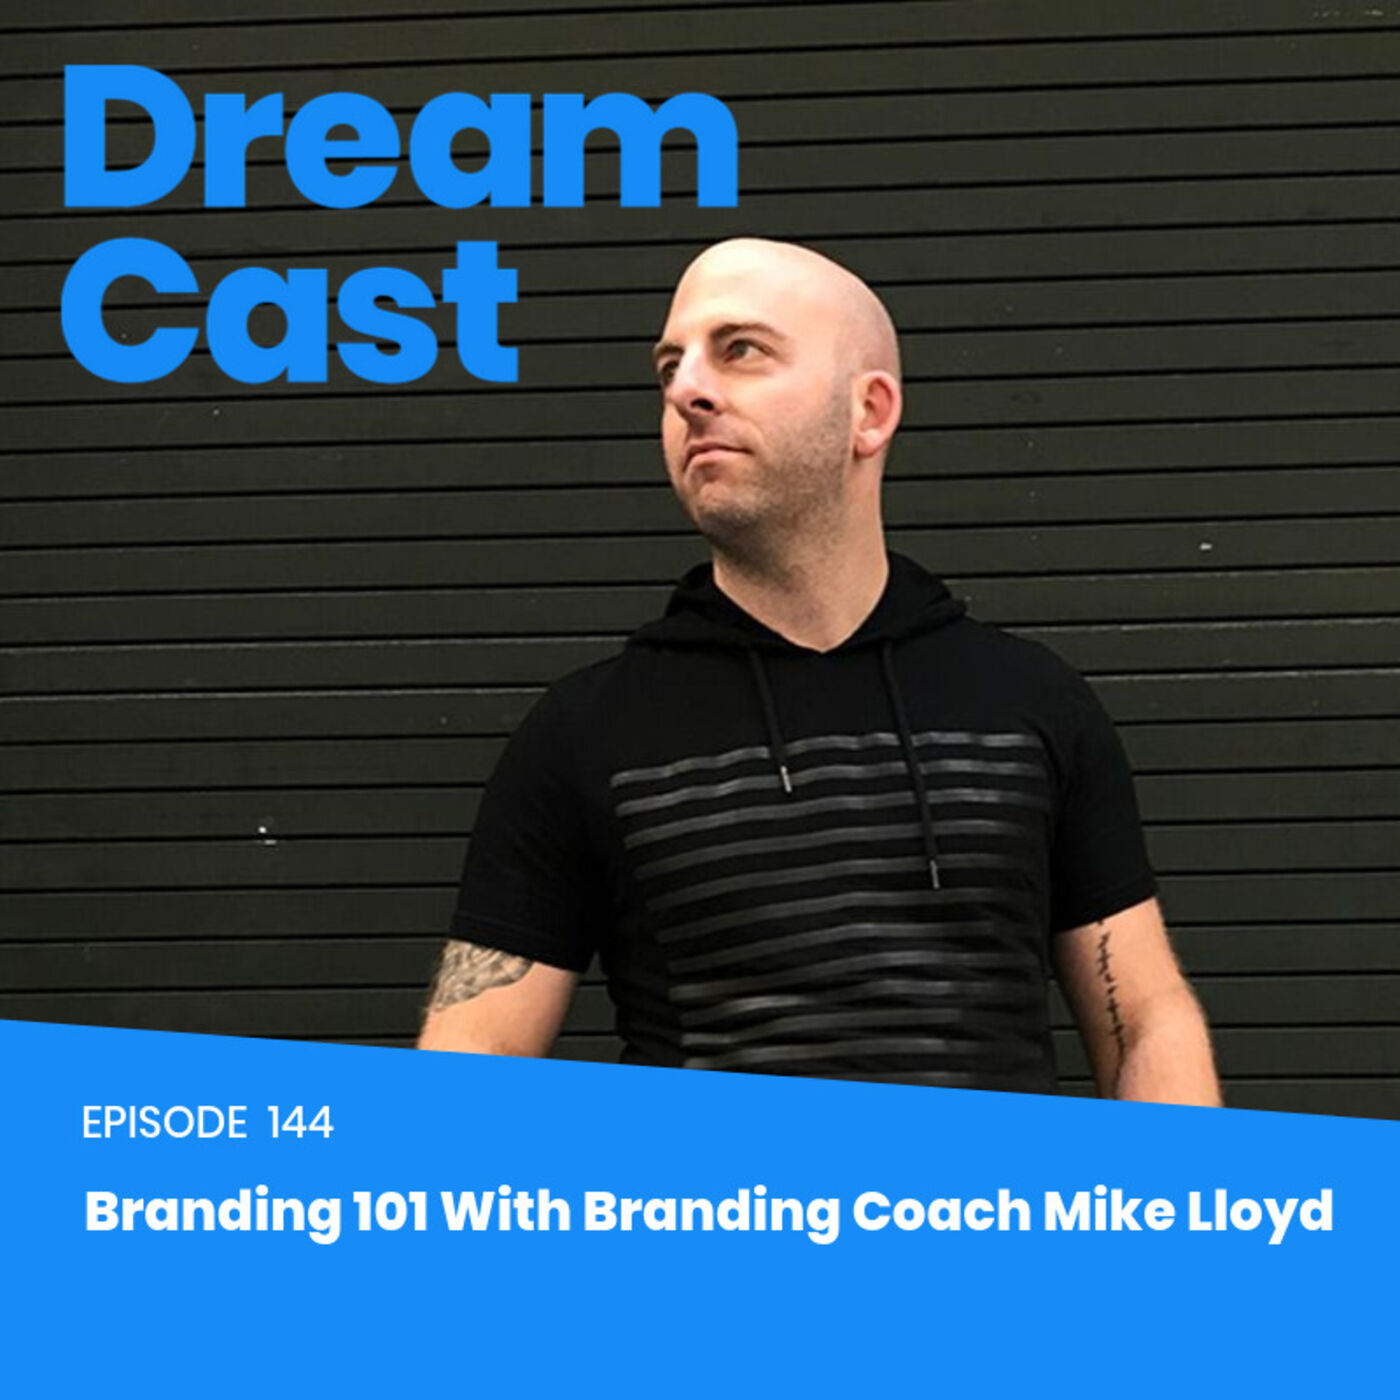 144: Branding 101 with Branding Coach Mike Lloyd